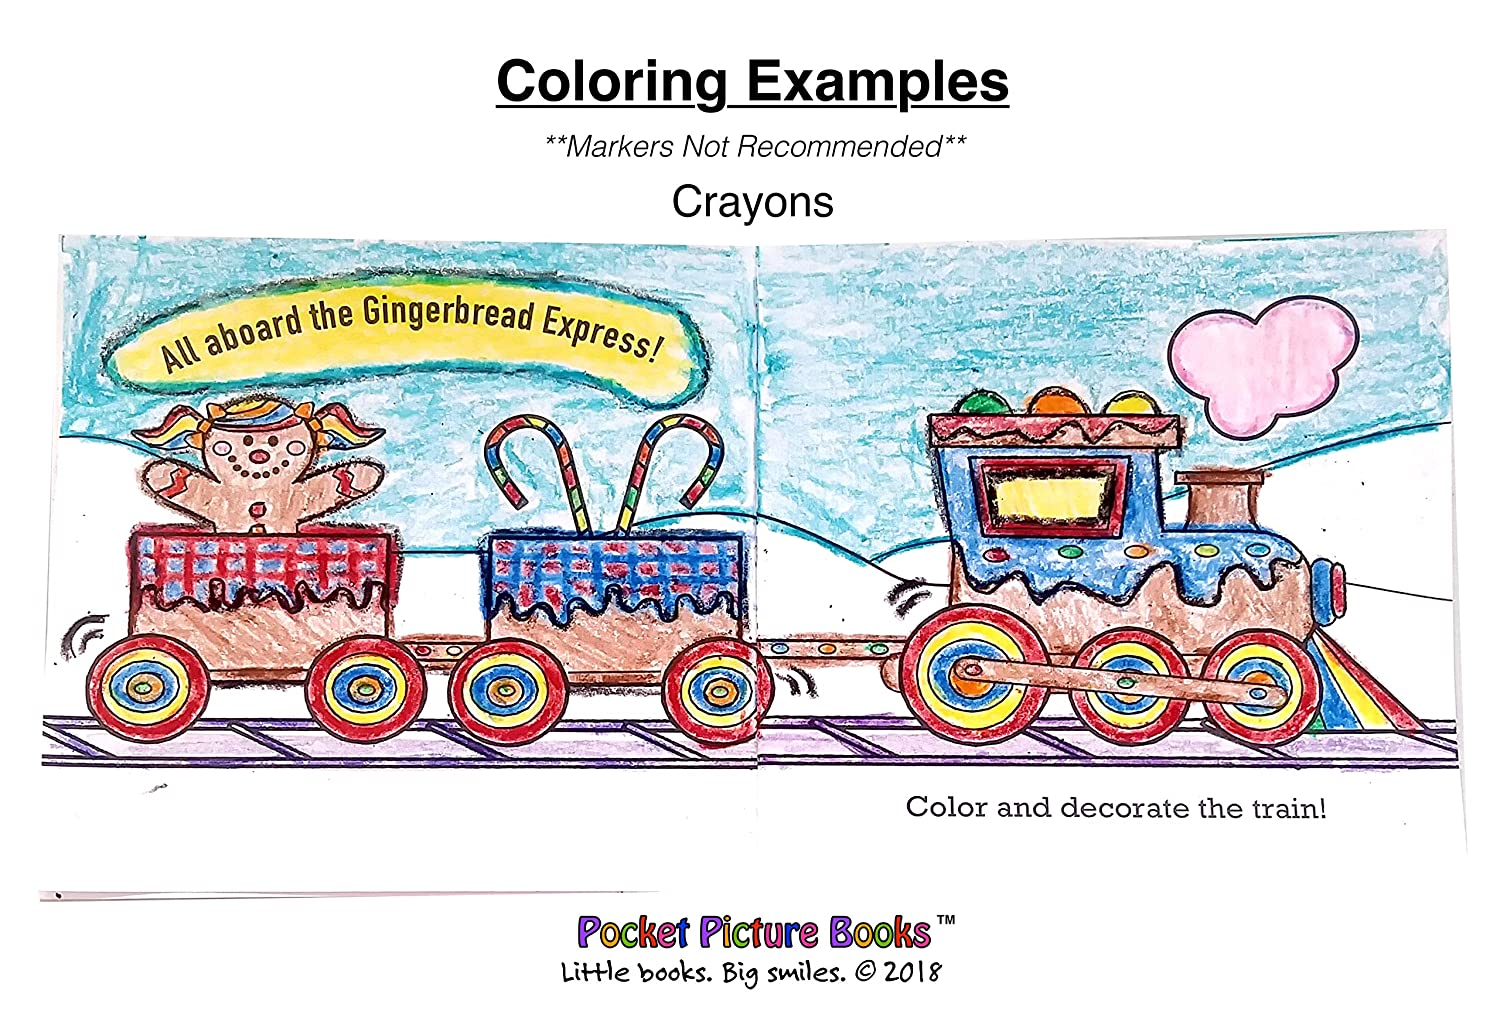 Pocket Picture Books 50 ct. Holiday Mini Coloring Books in Bulk: Includes 10 Winter-Themed Coloring Activities Mini Christmas Coloring Books